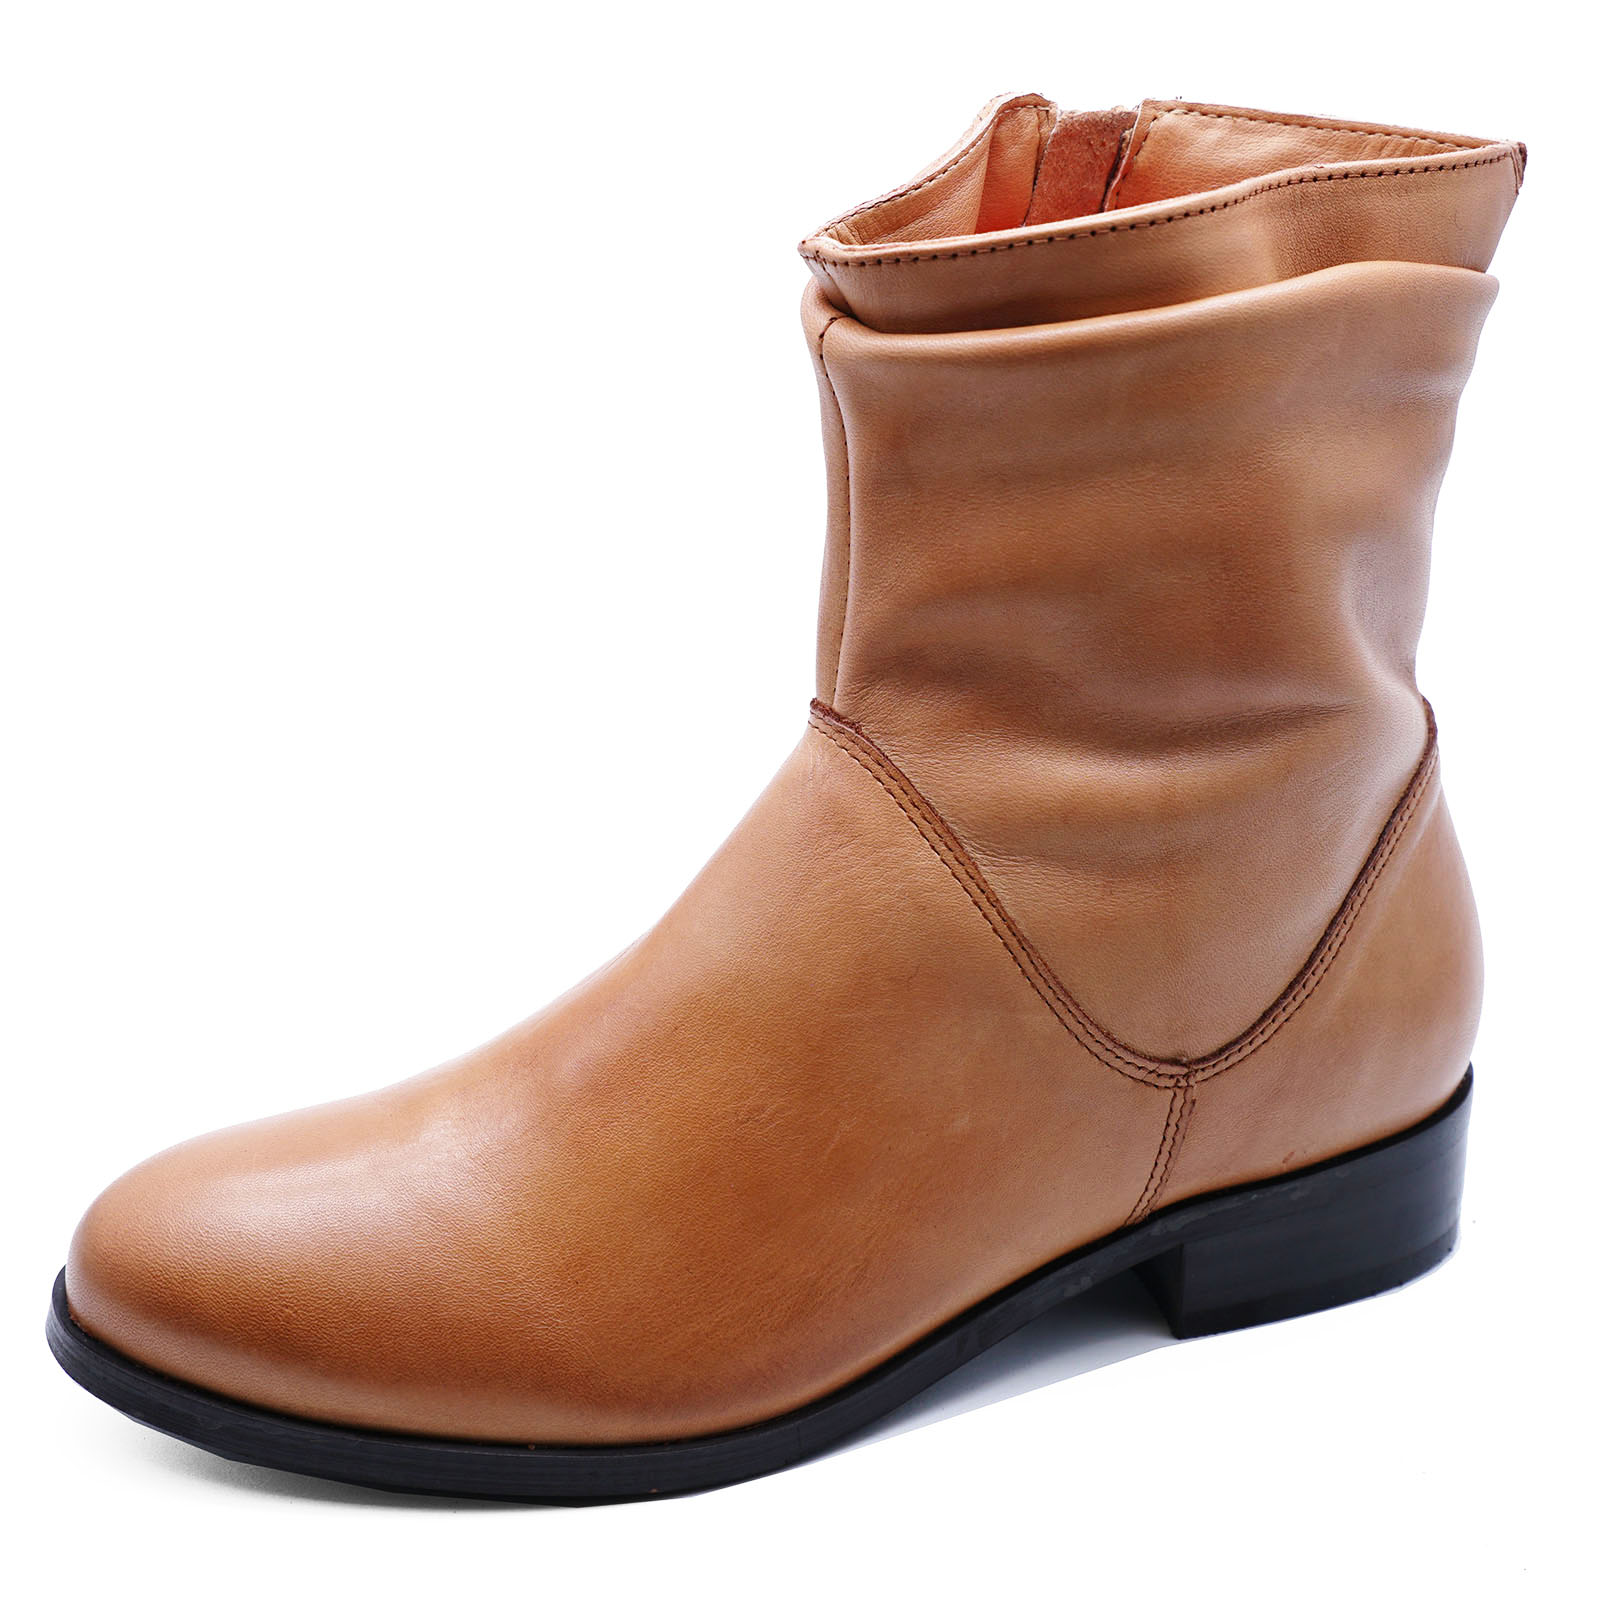 Find from the Womens department at Debenhams. Shop a wide range of Shoes & boots products and more at our online shop today.